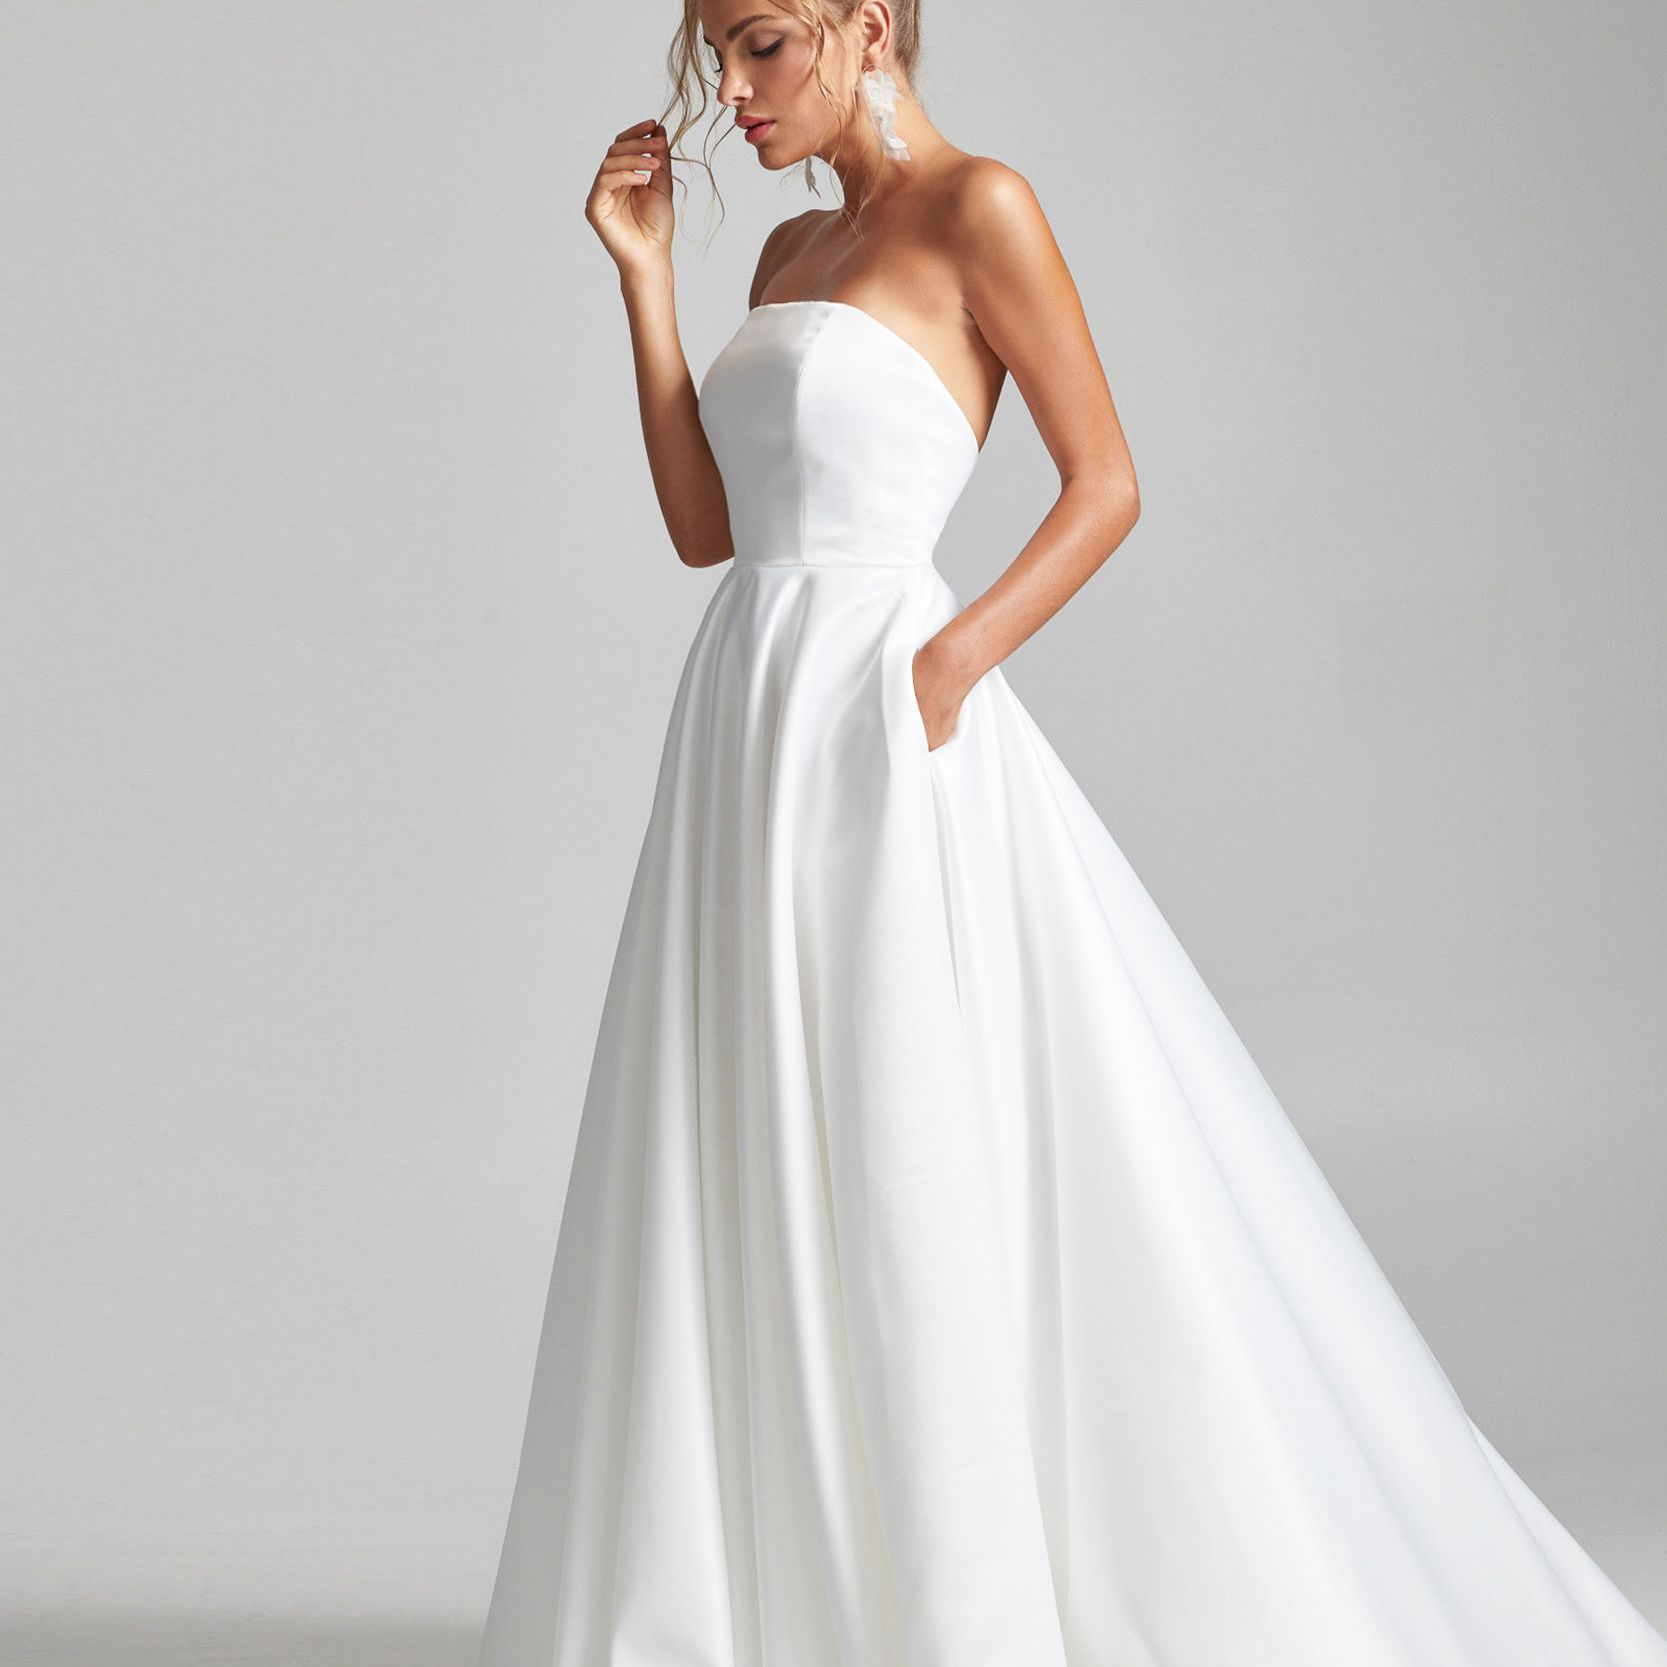 Model in strapless A-line wedding gown